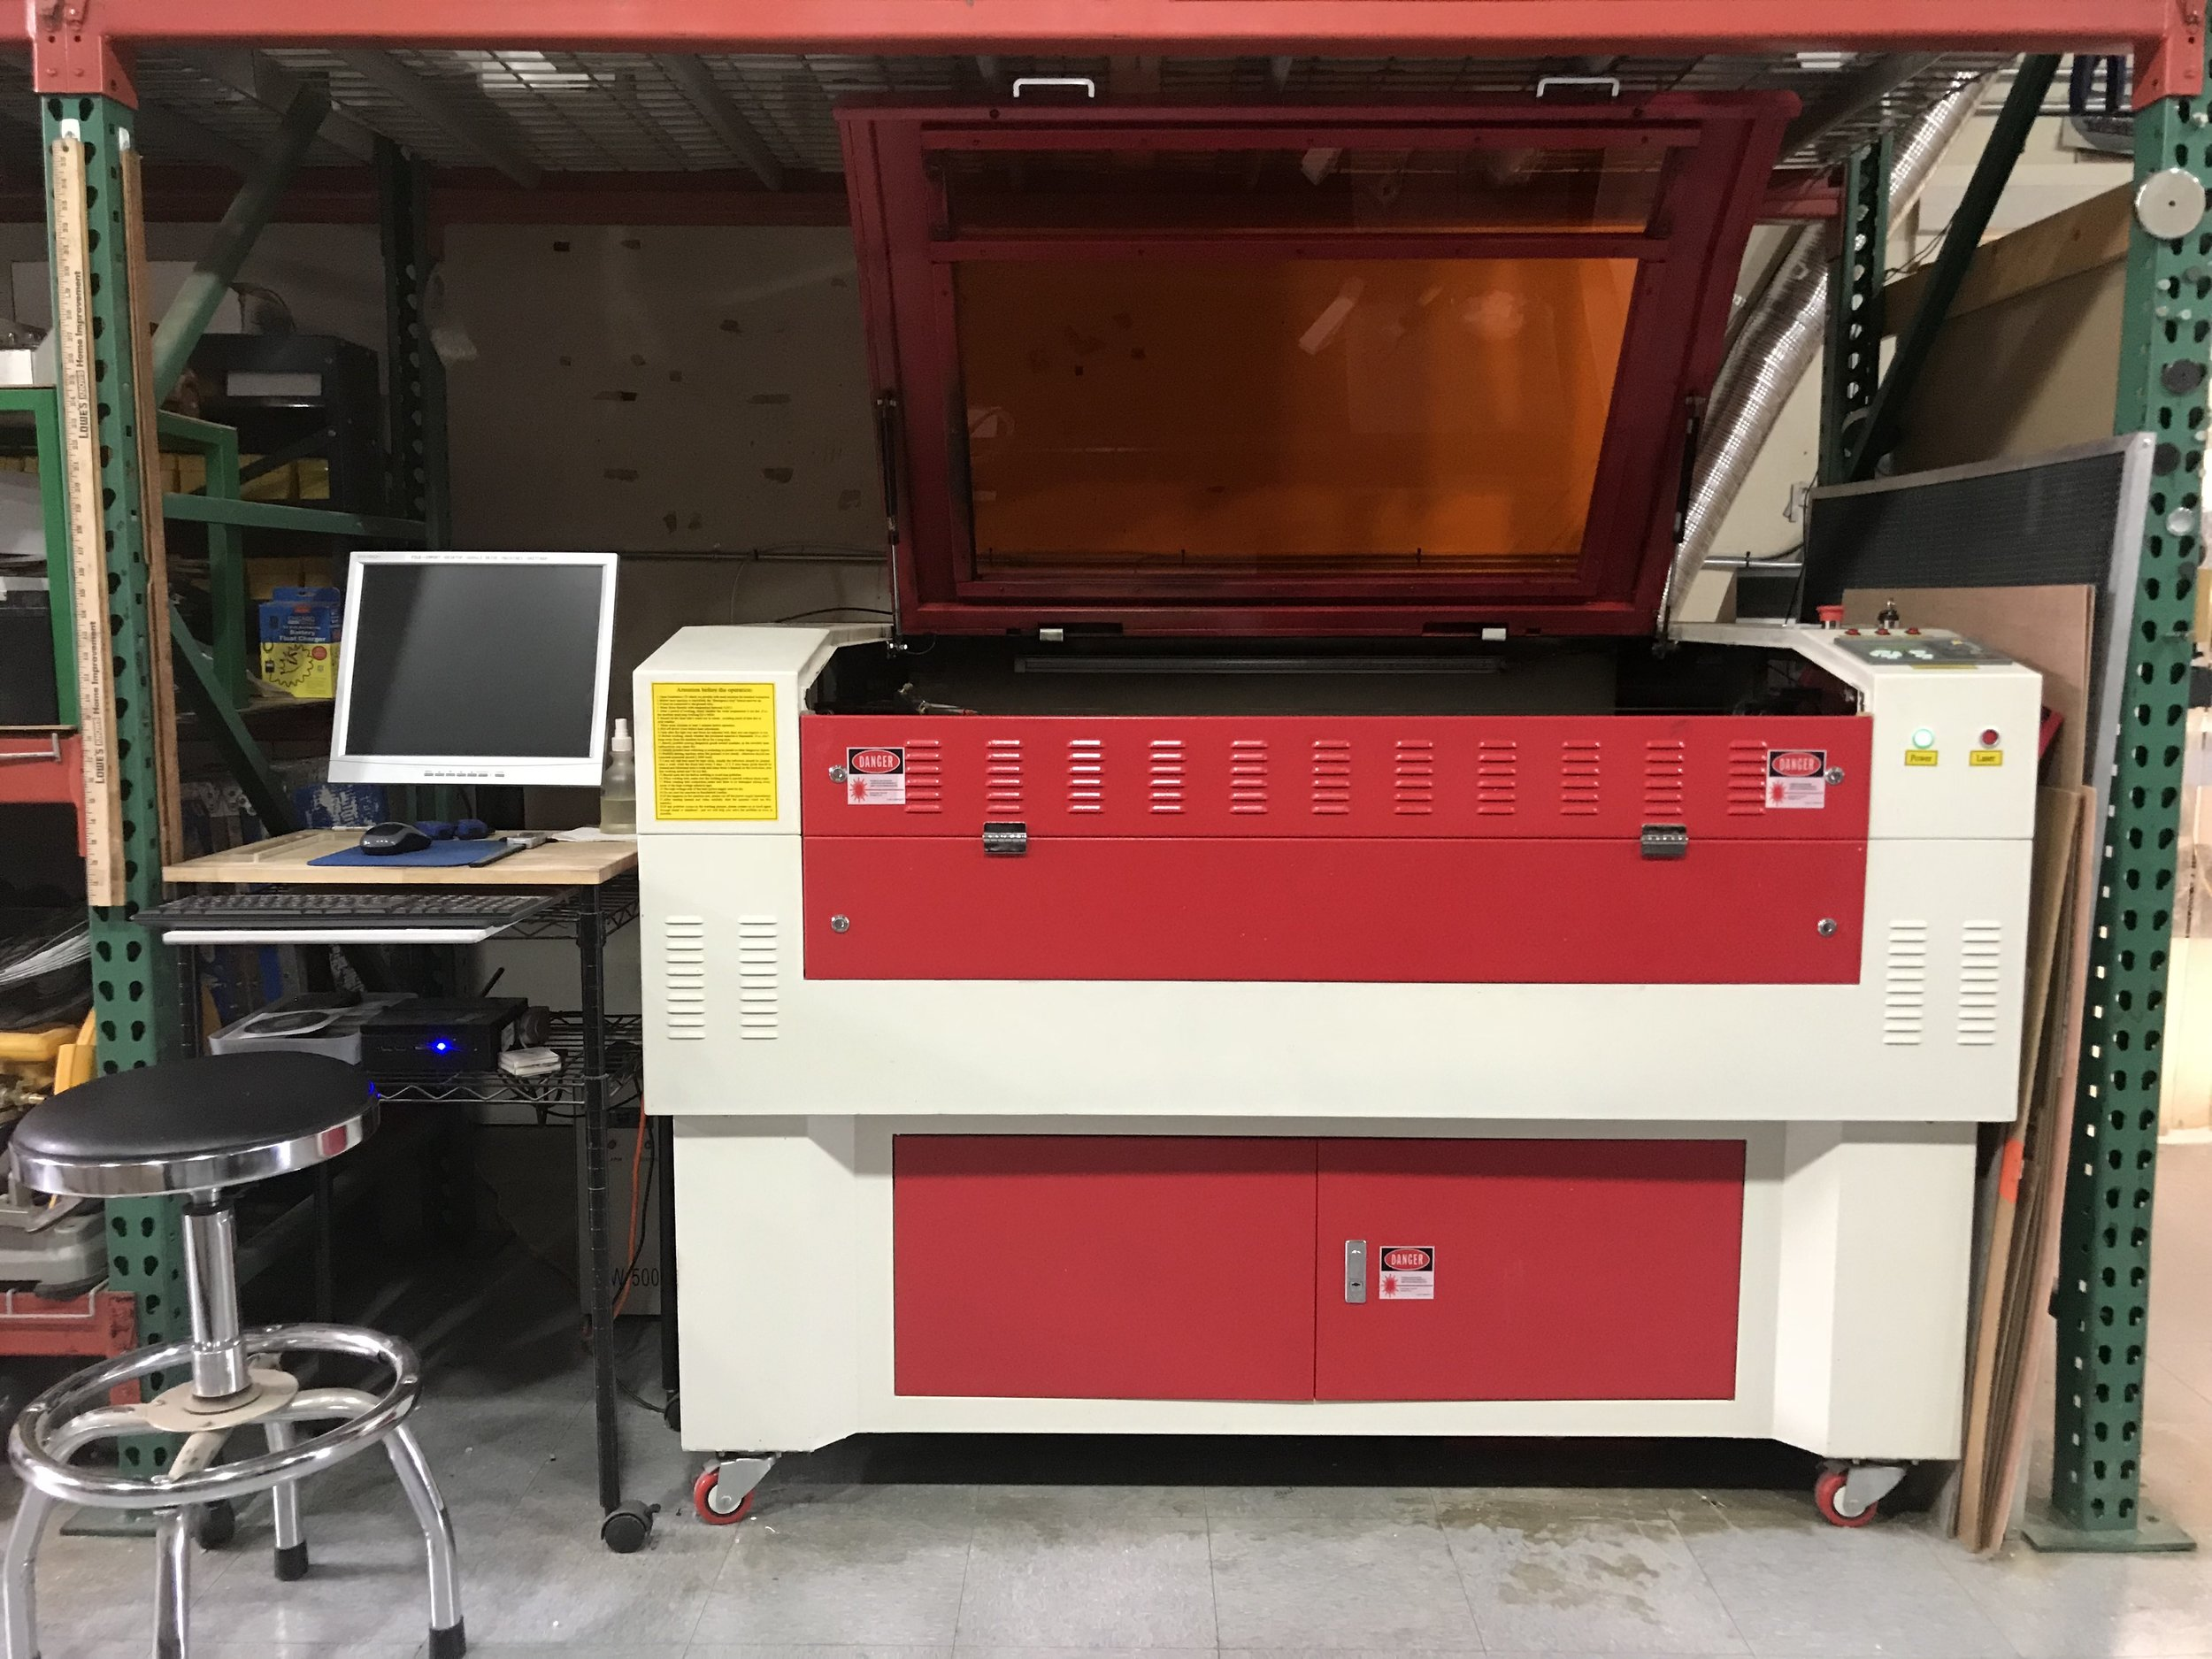 Here's our trusty 180 watt CO2 laser, with a 40 x 30 inch cutting area, we use this laser to cut the majority of our acrylic housings. Capable of cutting up to .75 inch acrylic, this reliable machine was our first laser and has preformed flawlessly.